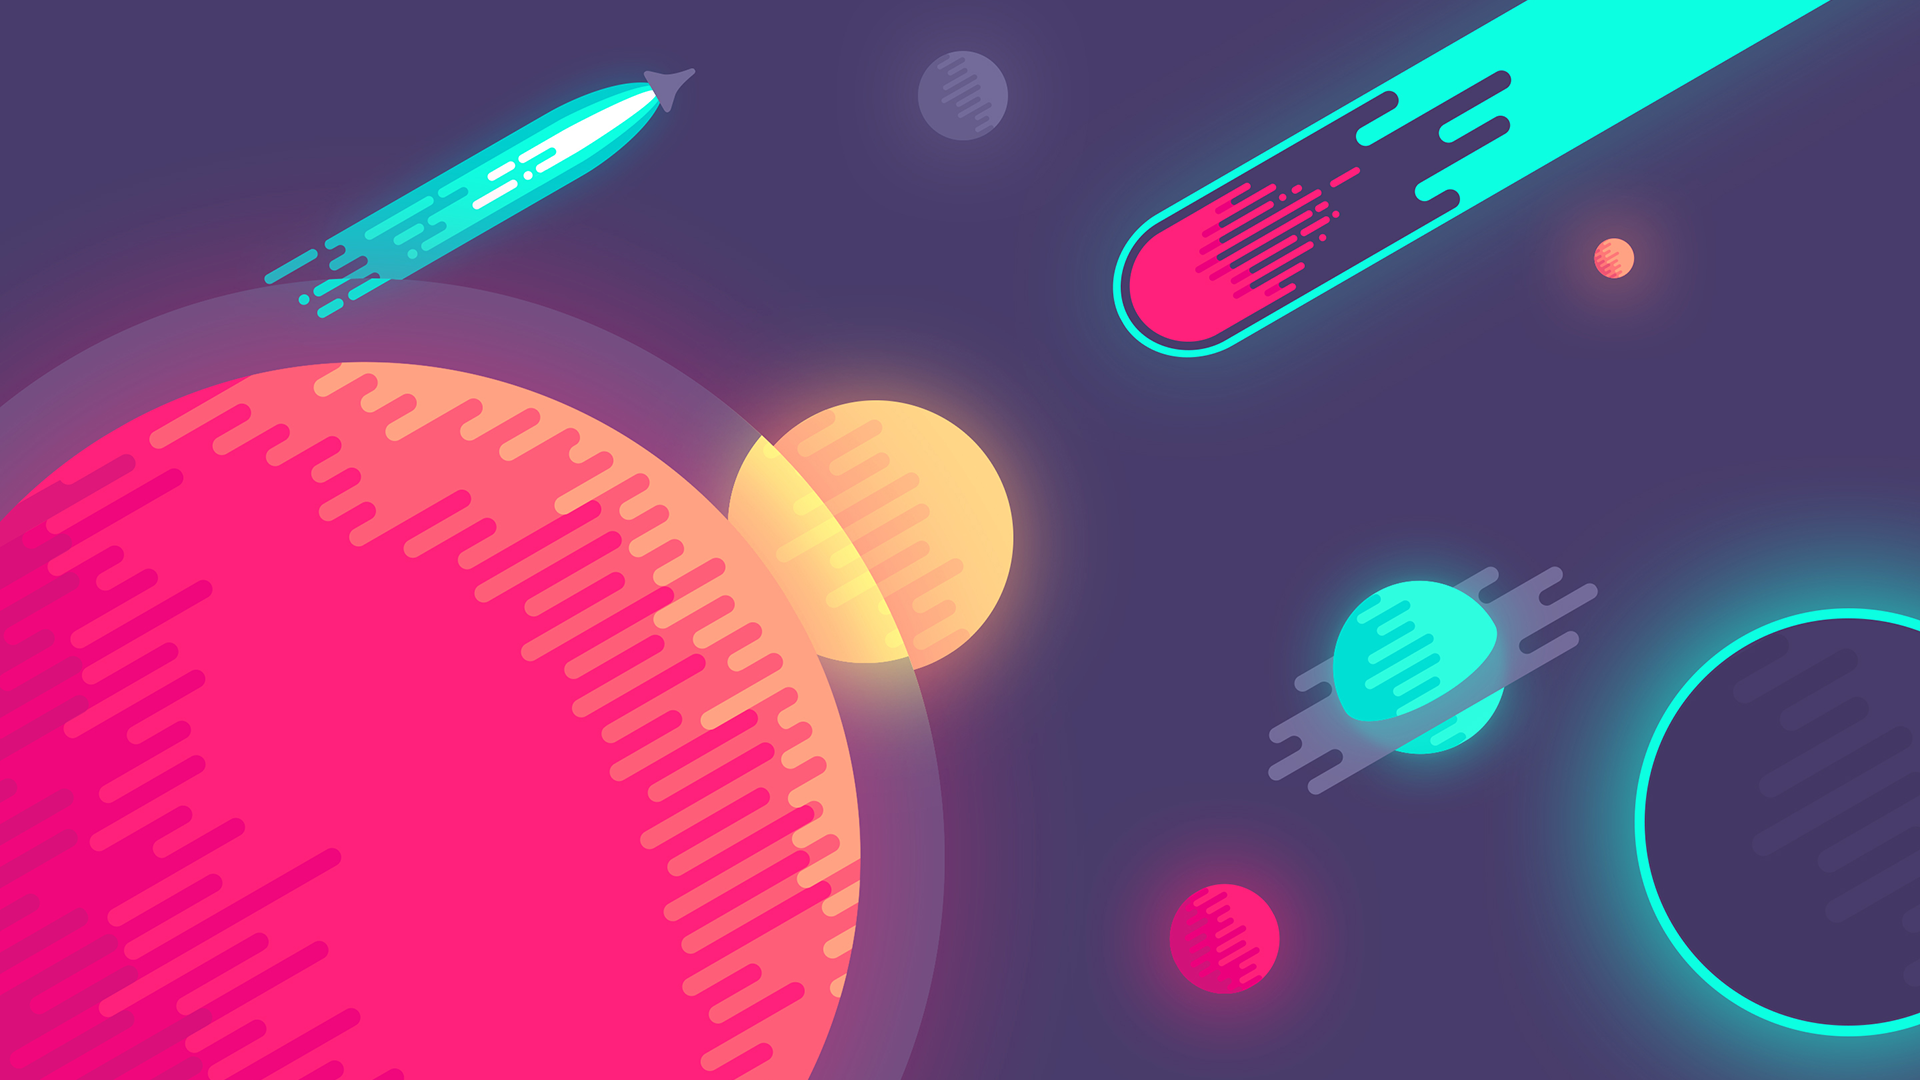 1920x1080 space colorful minimalism hd 4k wallpapers in 1920x1080